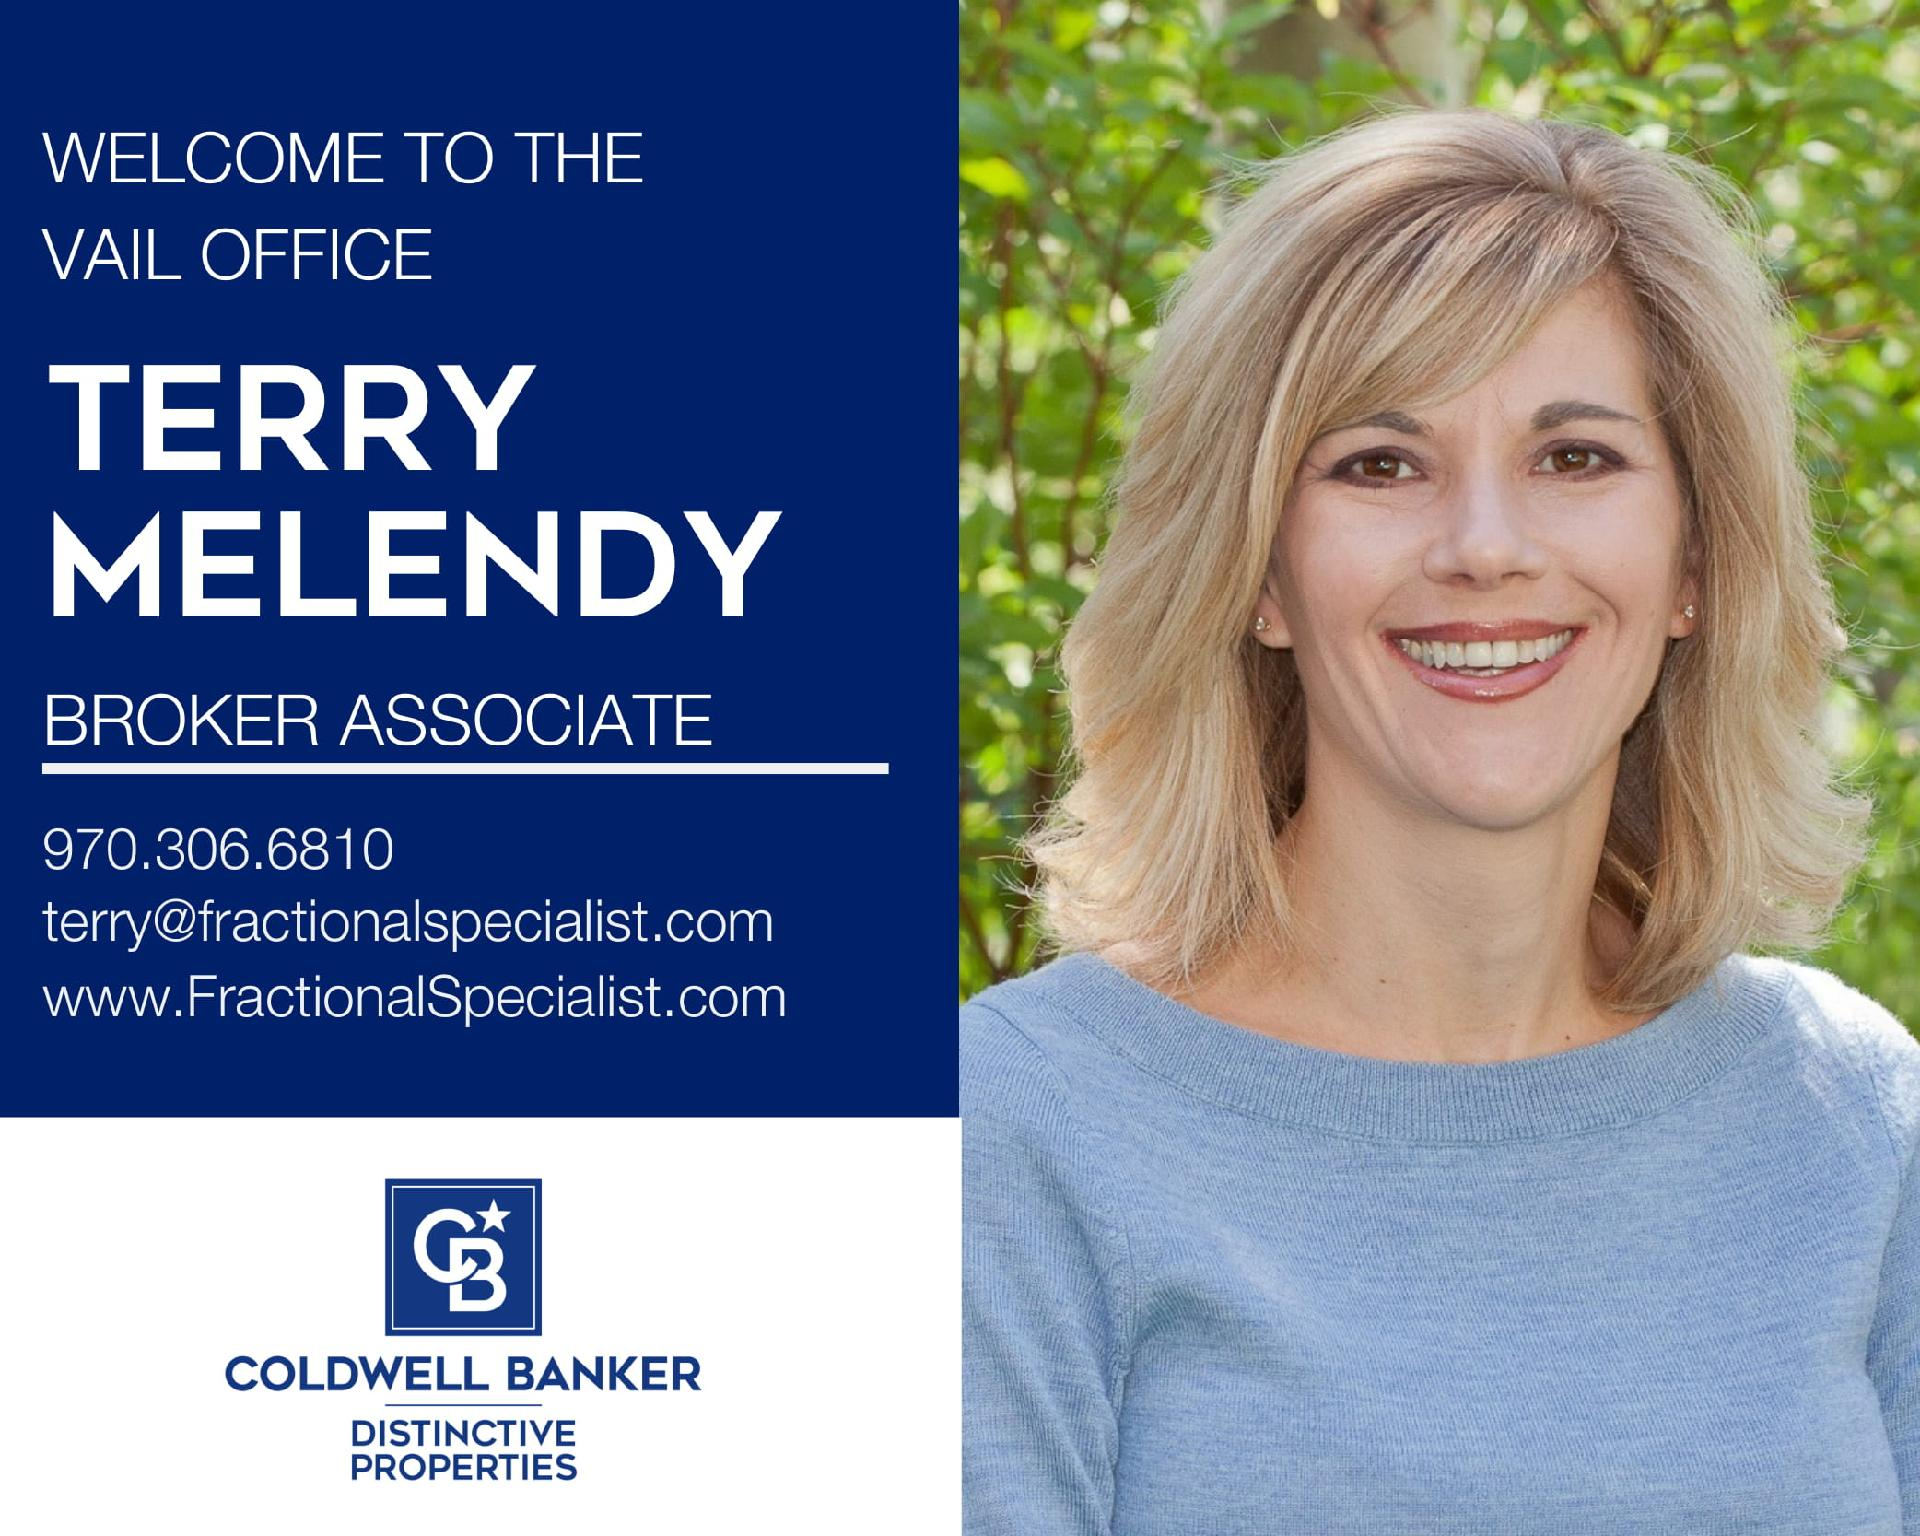 Please help us welcome Terry Melendy to our Coldwell Banker family! Main Photo